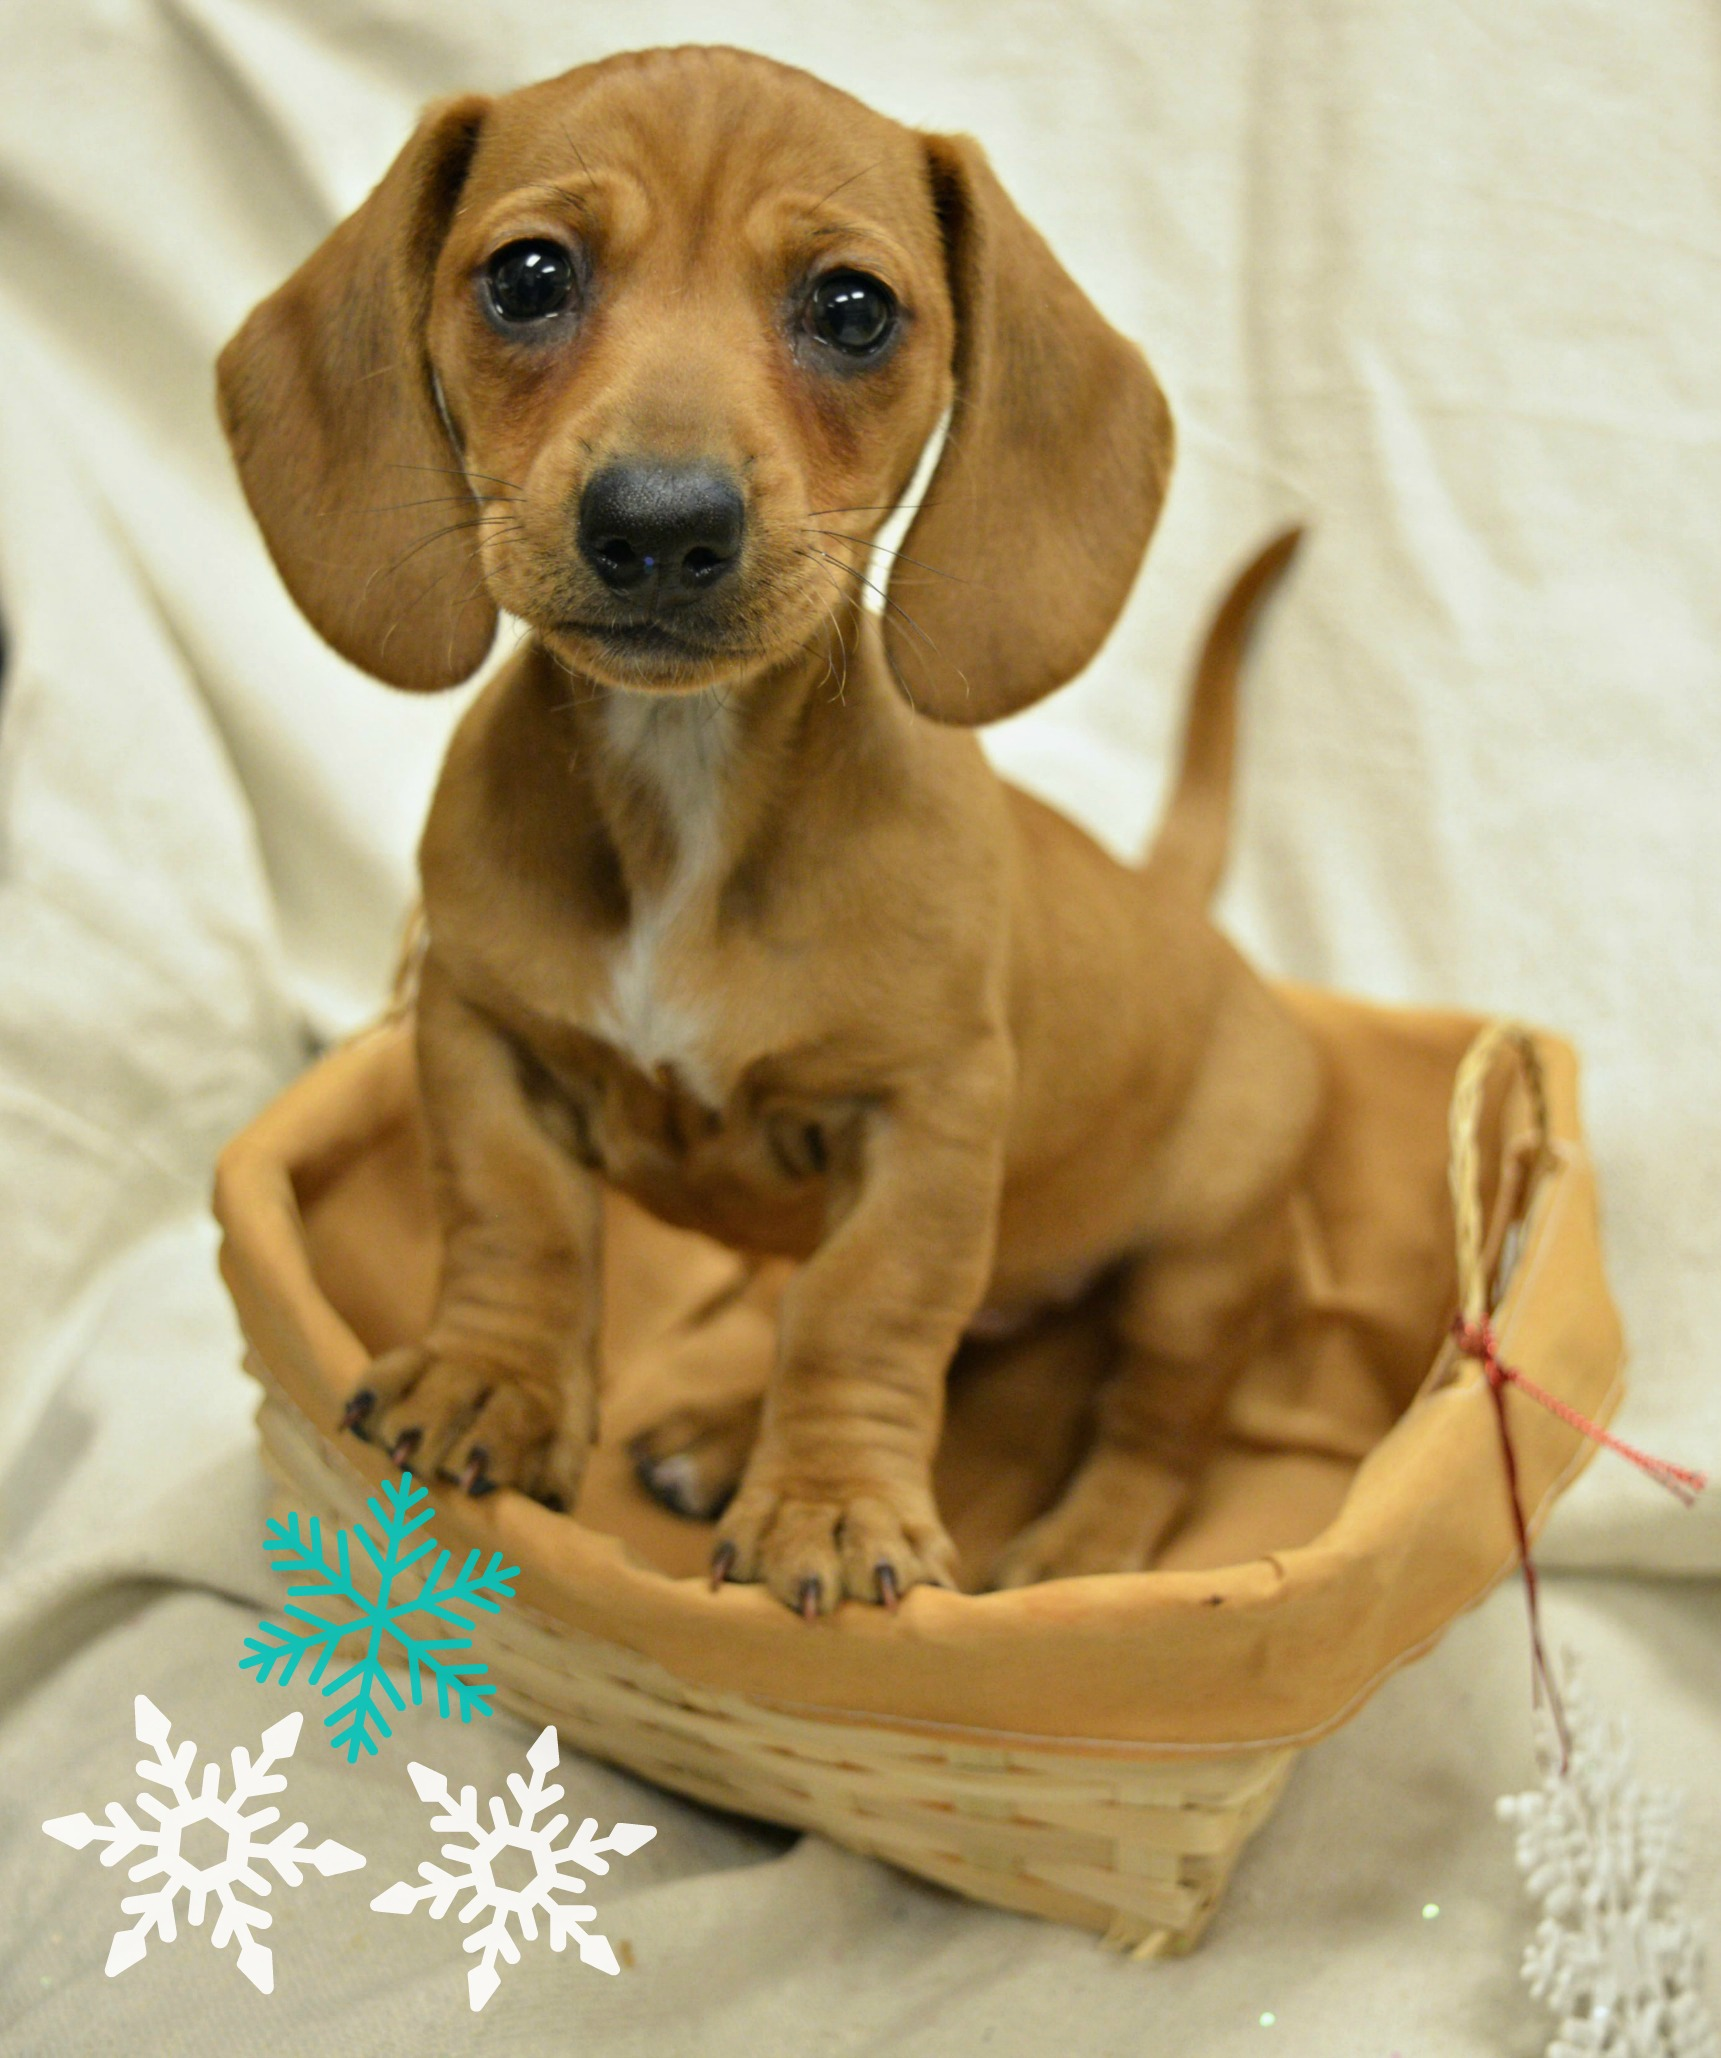 Tulip_Hinterman_Puppy_Edit_WCAH__Snowflakes_Holidays2016.jpg